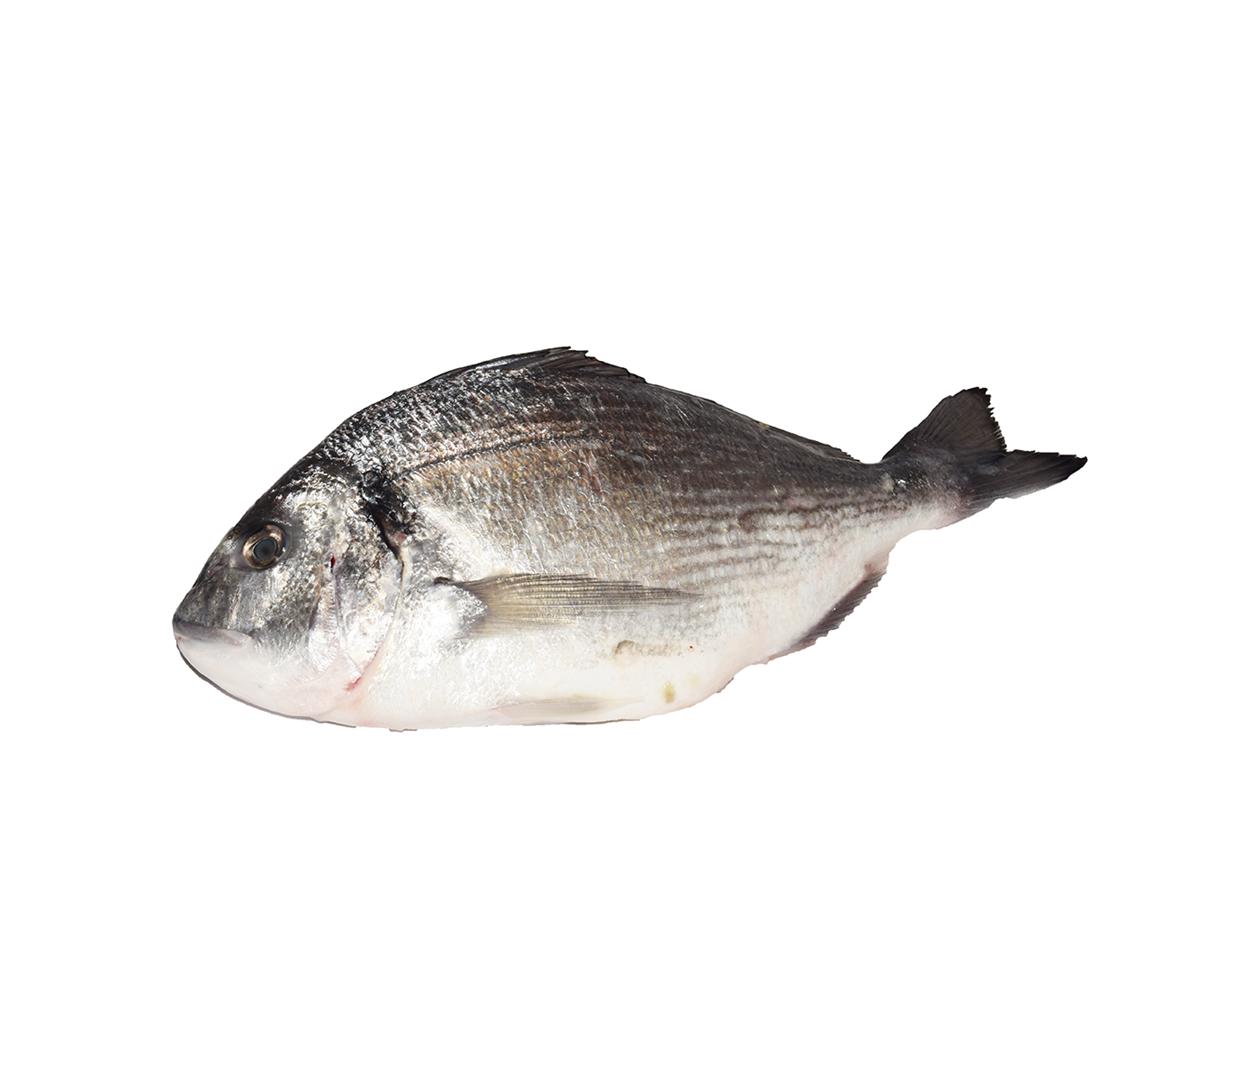 Productafbeelding WILD SEABREAM ROYAL 2KG UP, GUTTED AND SCALES OFF,FROZEN